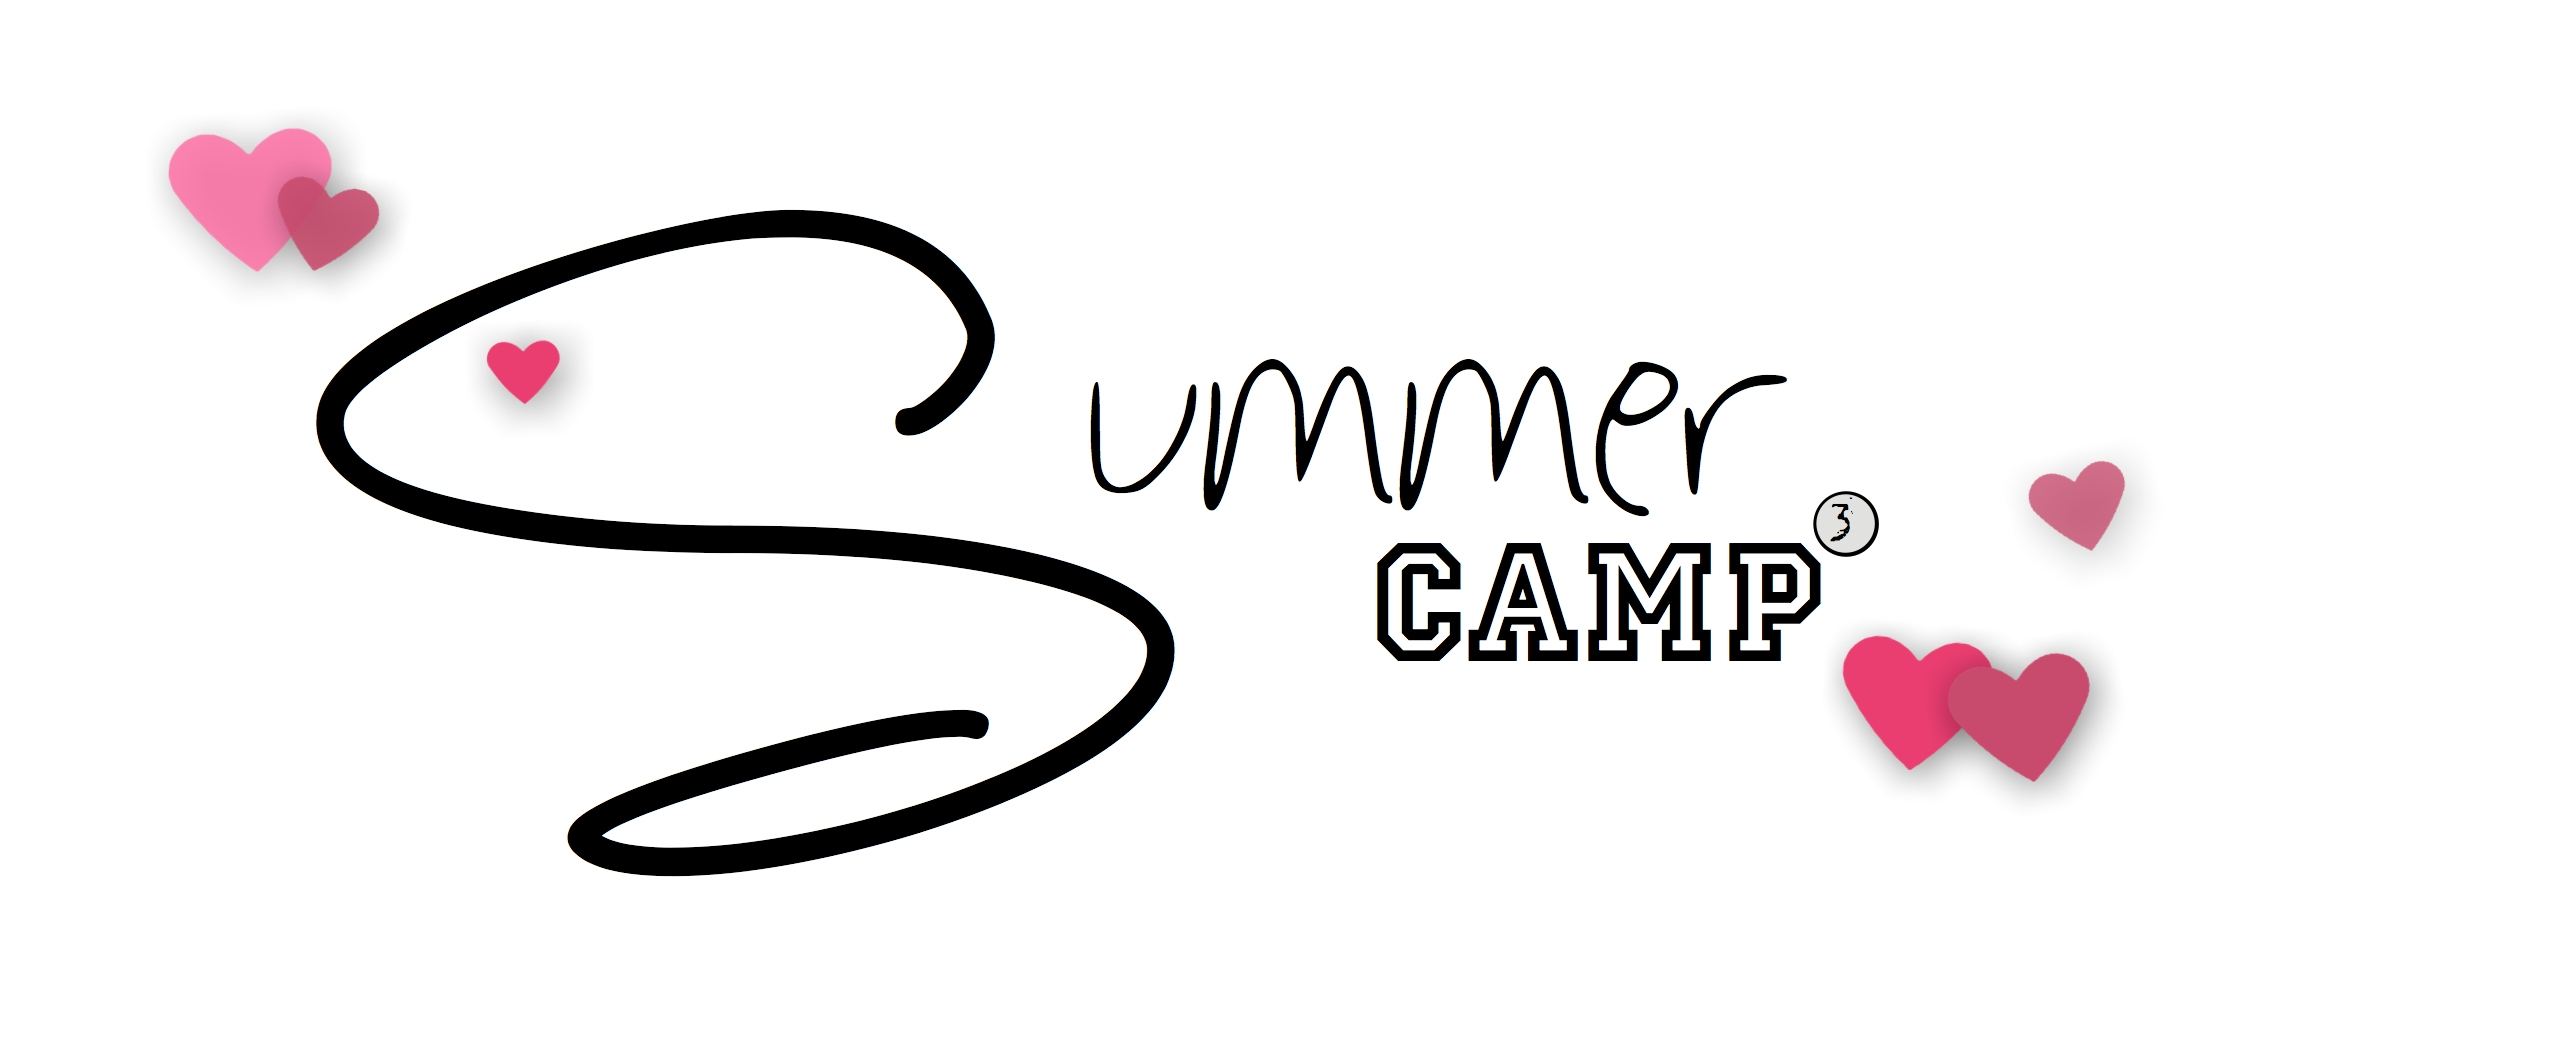 SUmmerCamp 2015 Logo